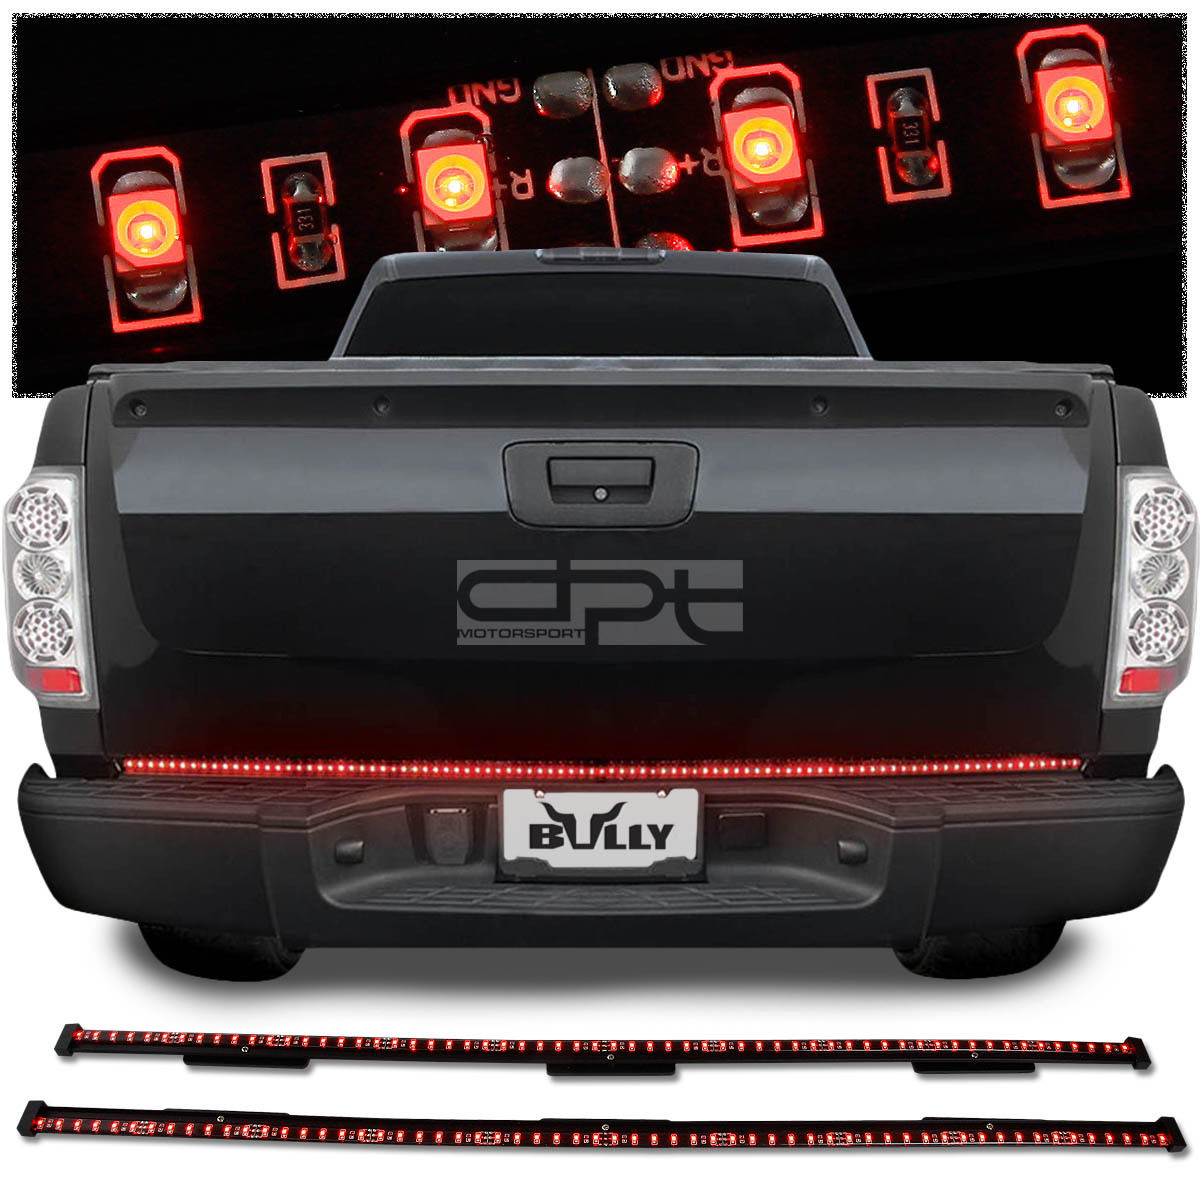 firestorm led tailgate light bar 2001 ford taurus firing order diagram 60 quot cut to fit fire strip red truck